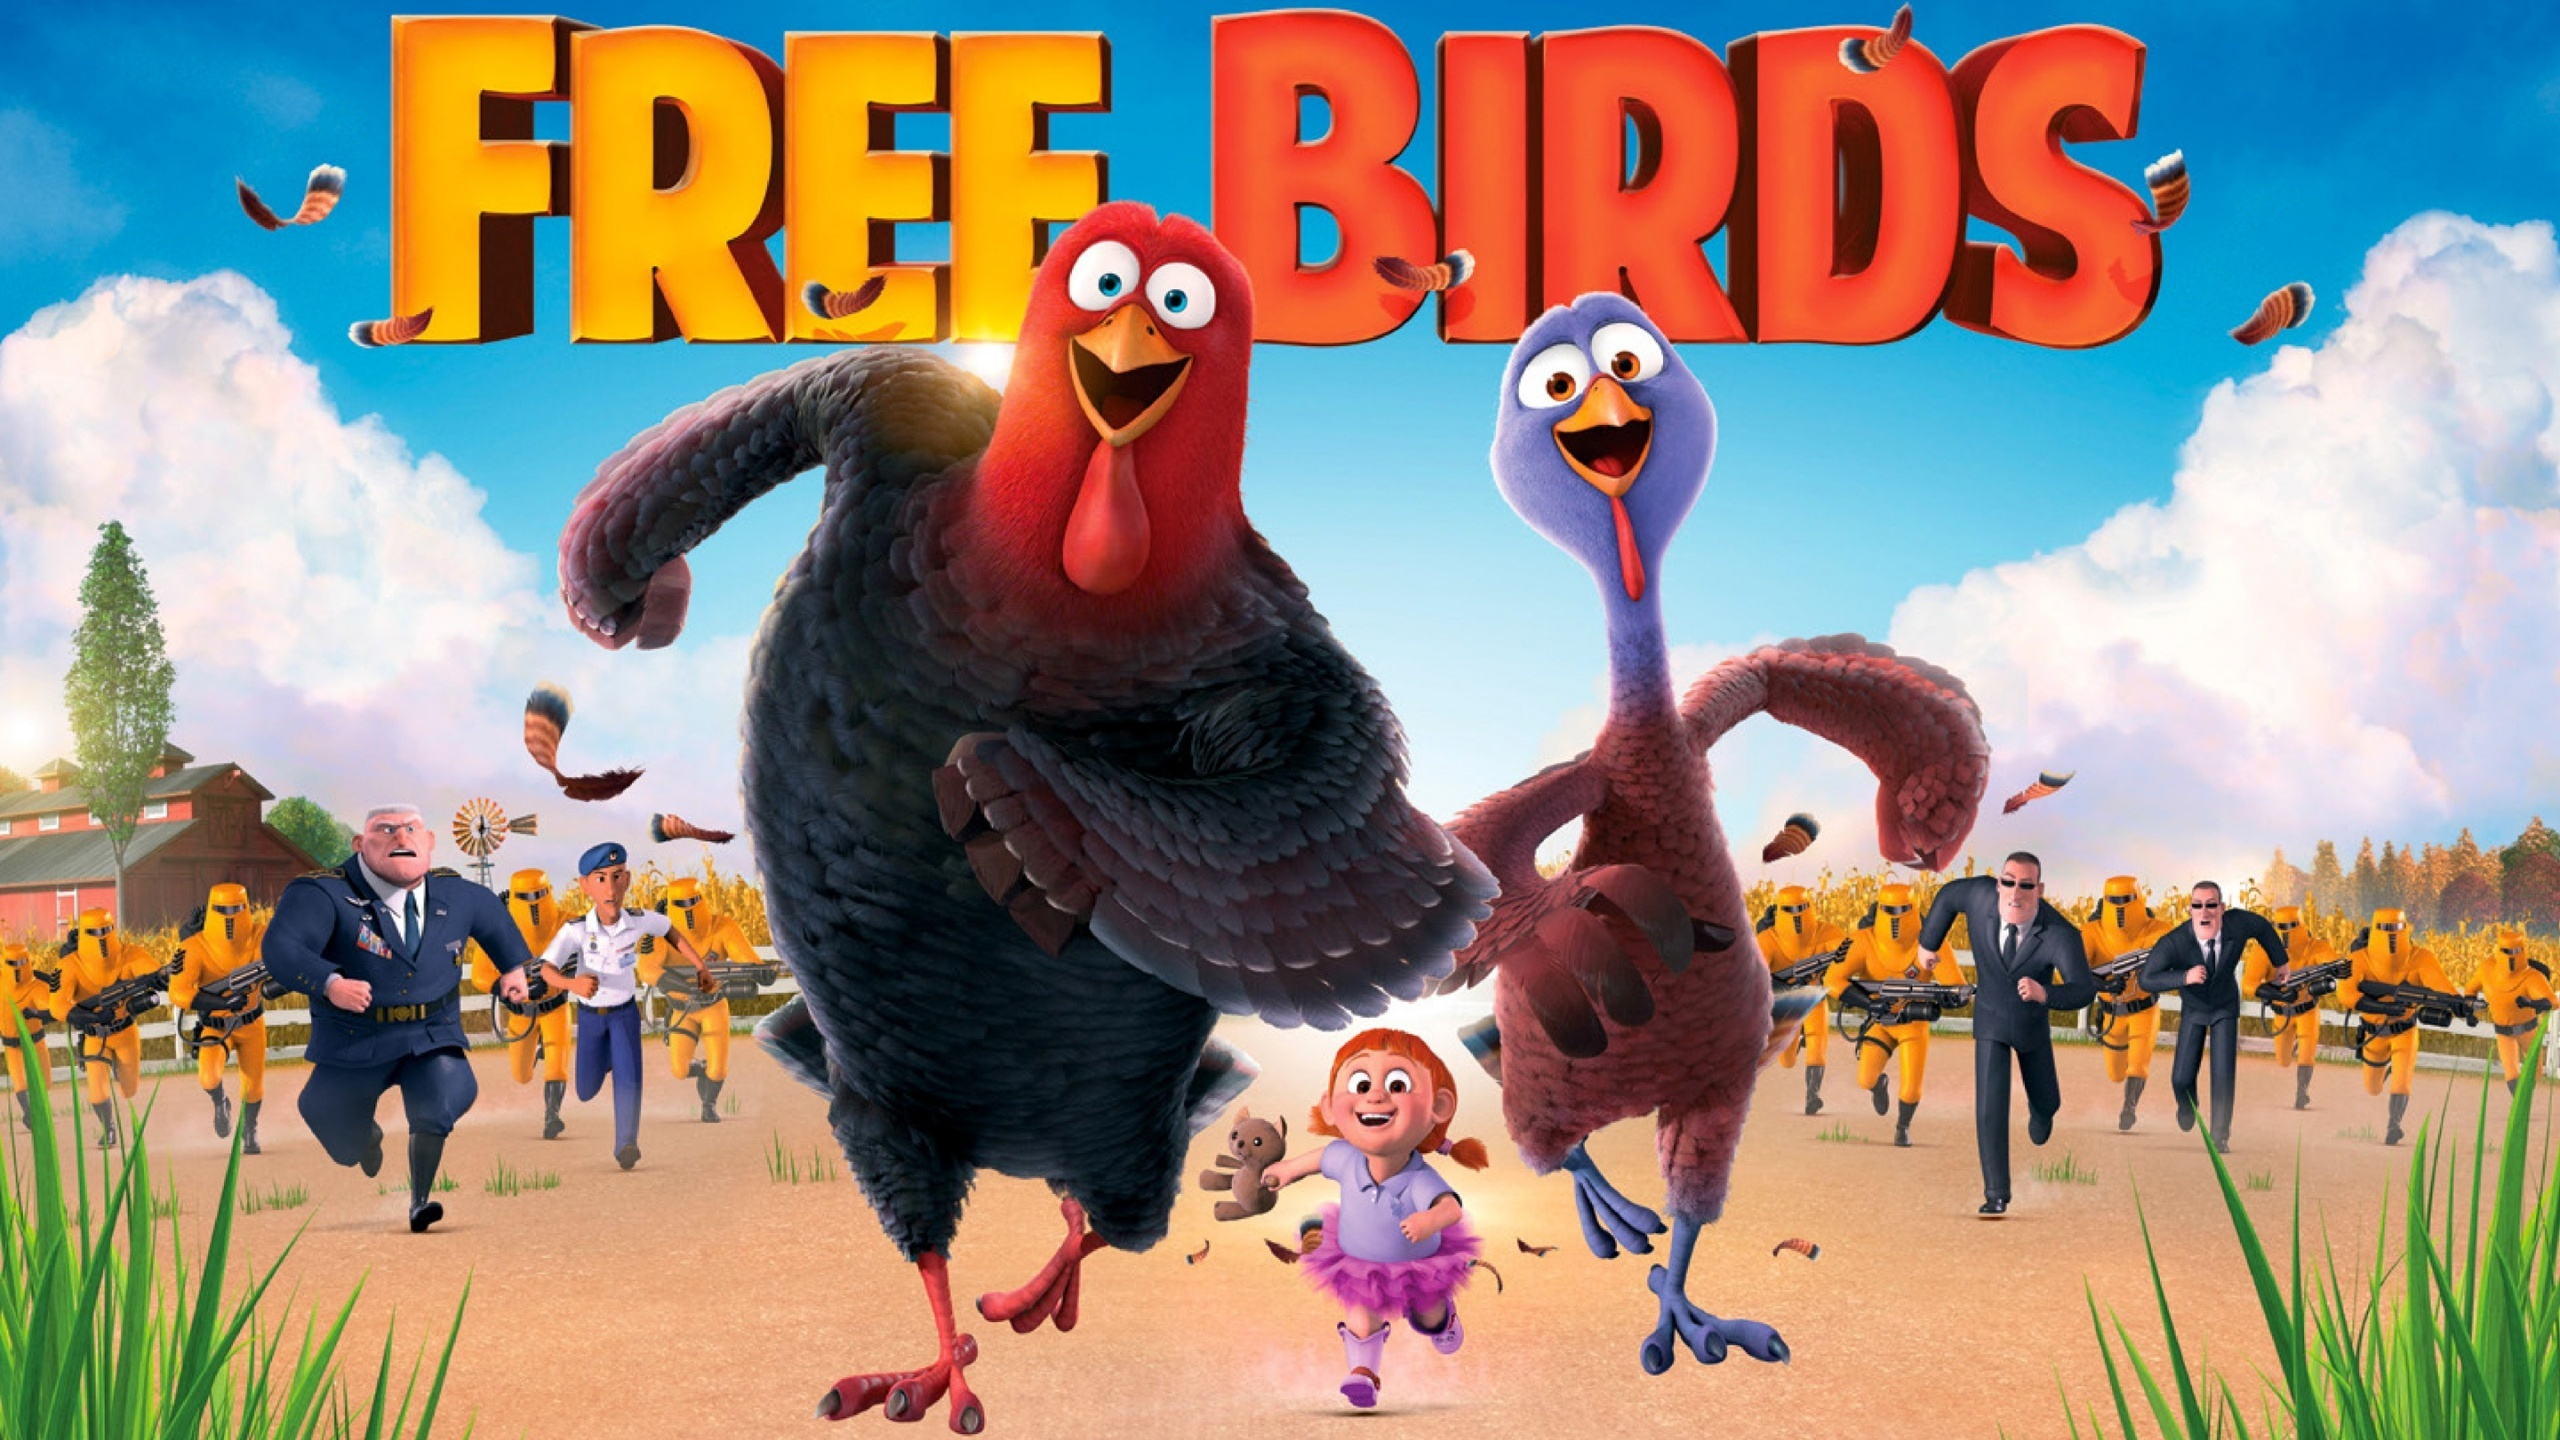 FREE BIRDS Now Available on Blu-Ray and DVD